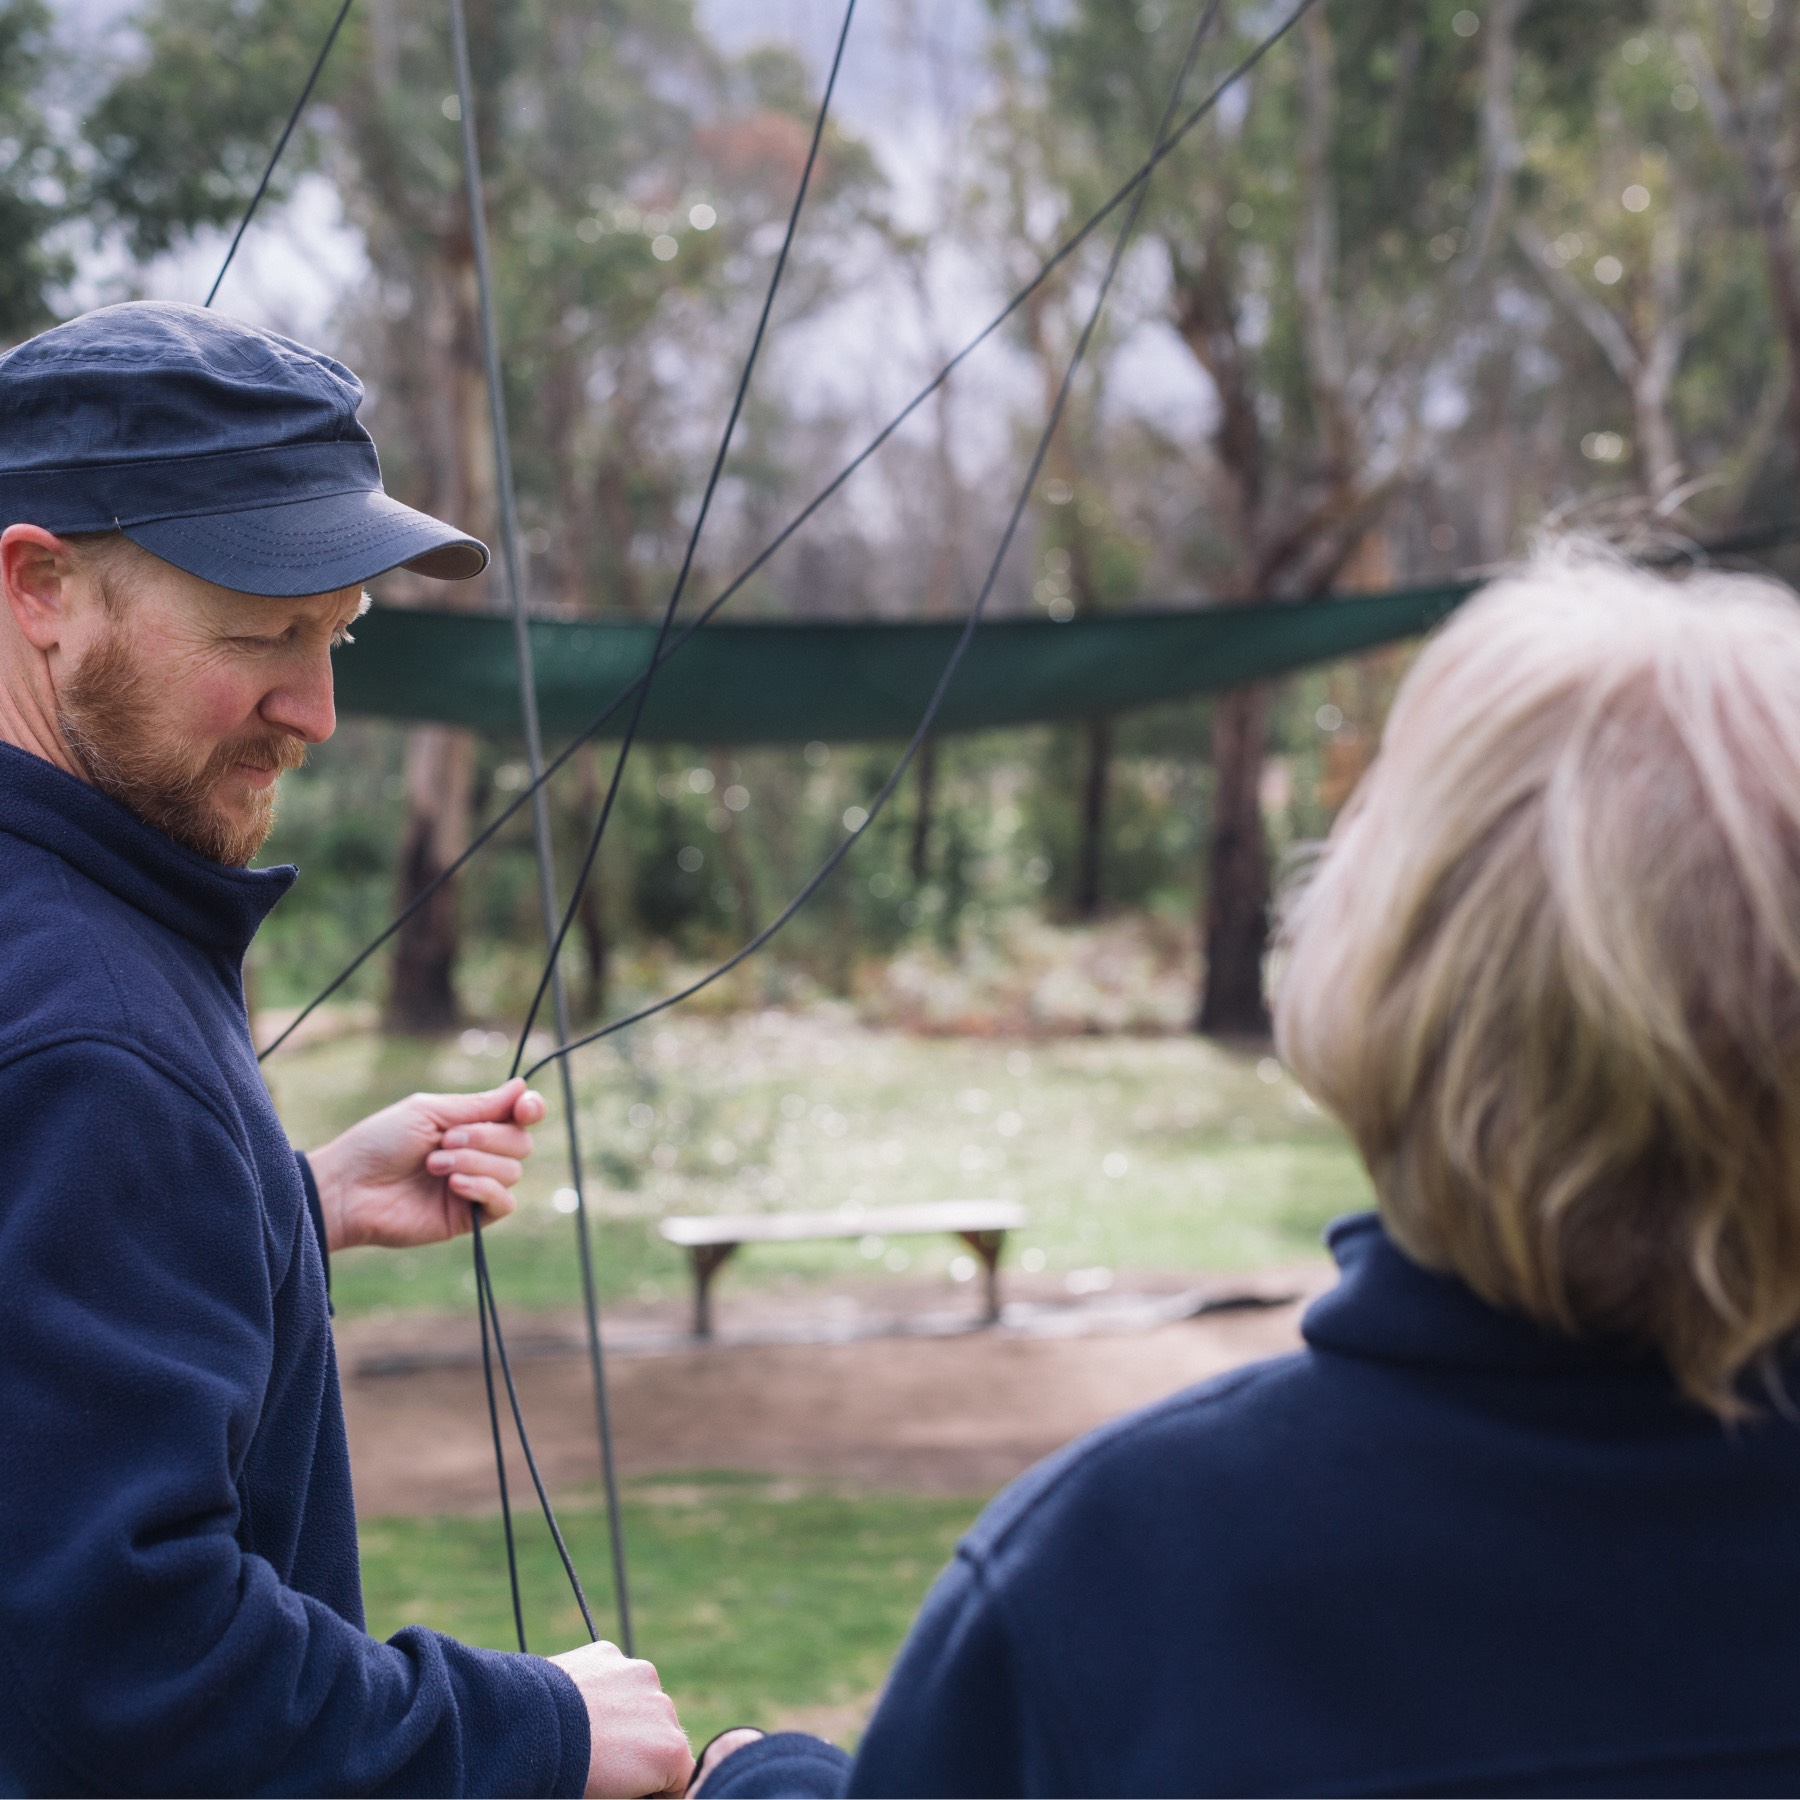 Roses Gap Recreation Centre is a outdoors activity camp for school aged kids in Roses Gap, Victoria